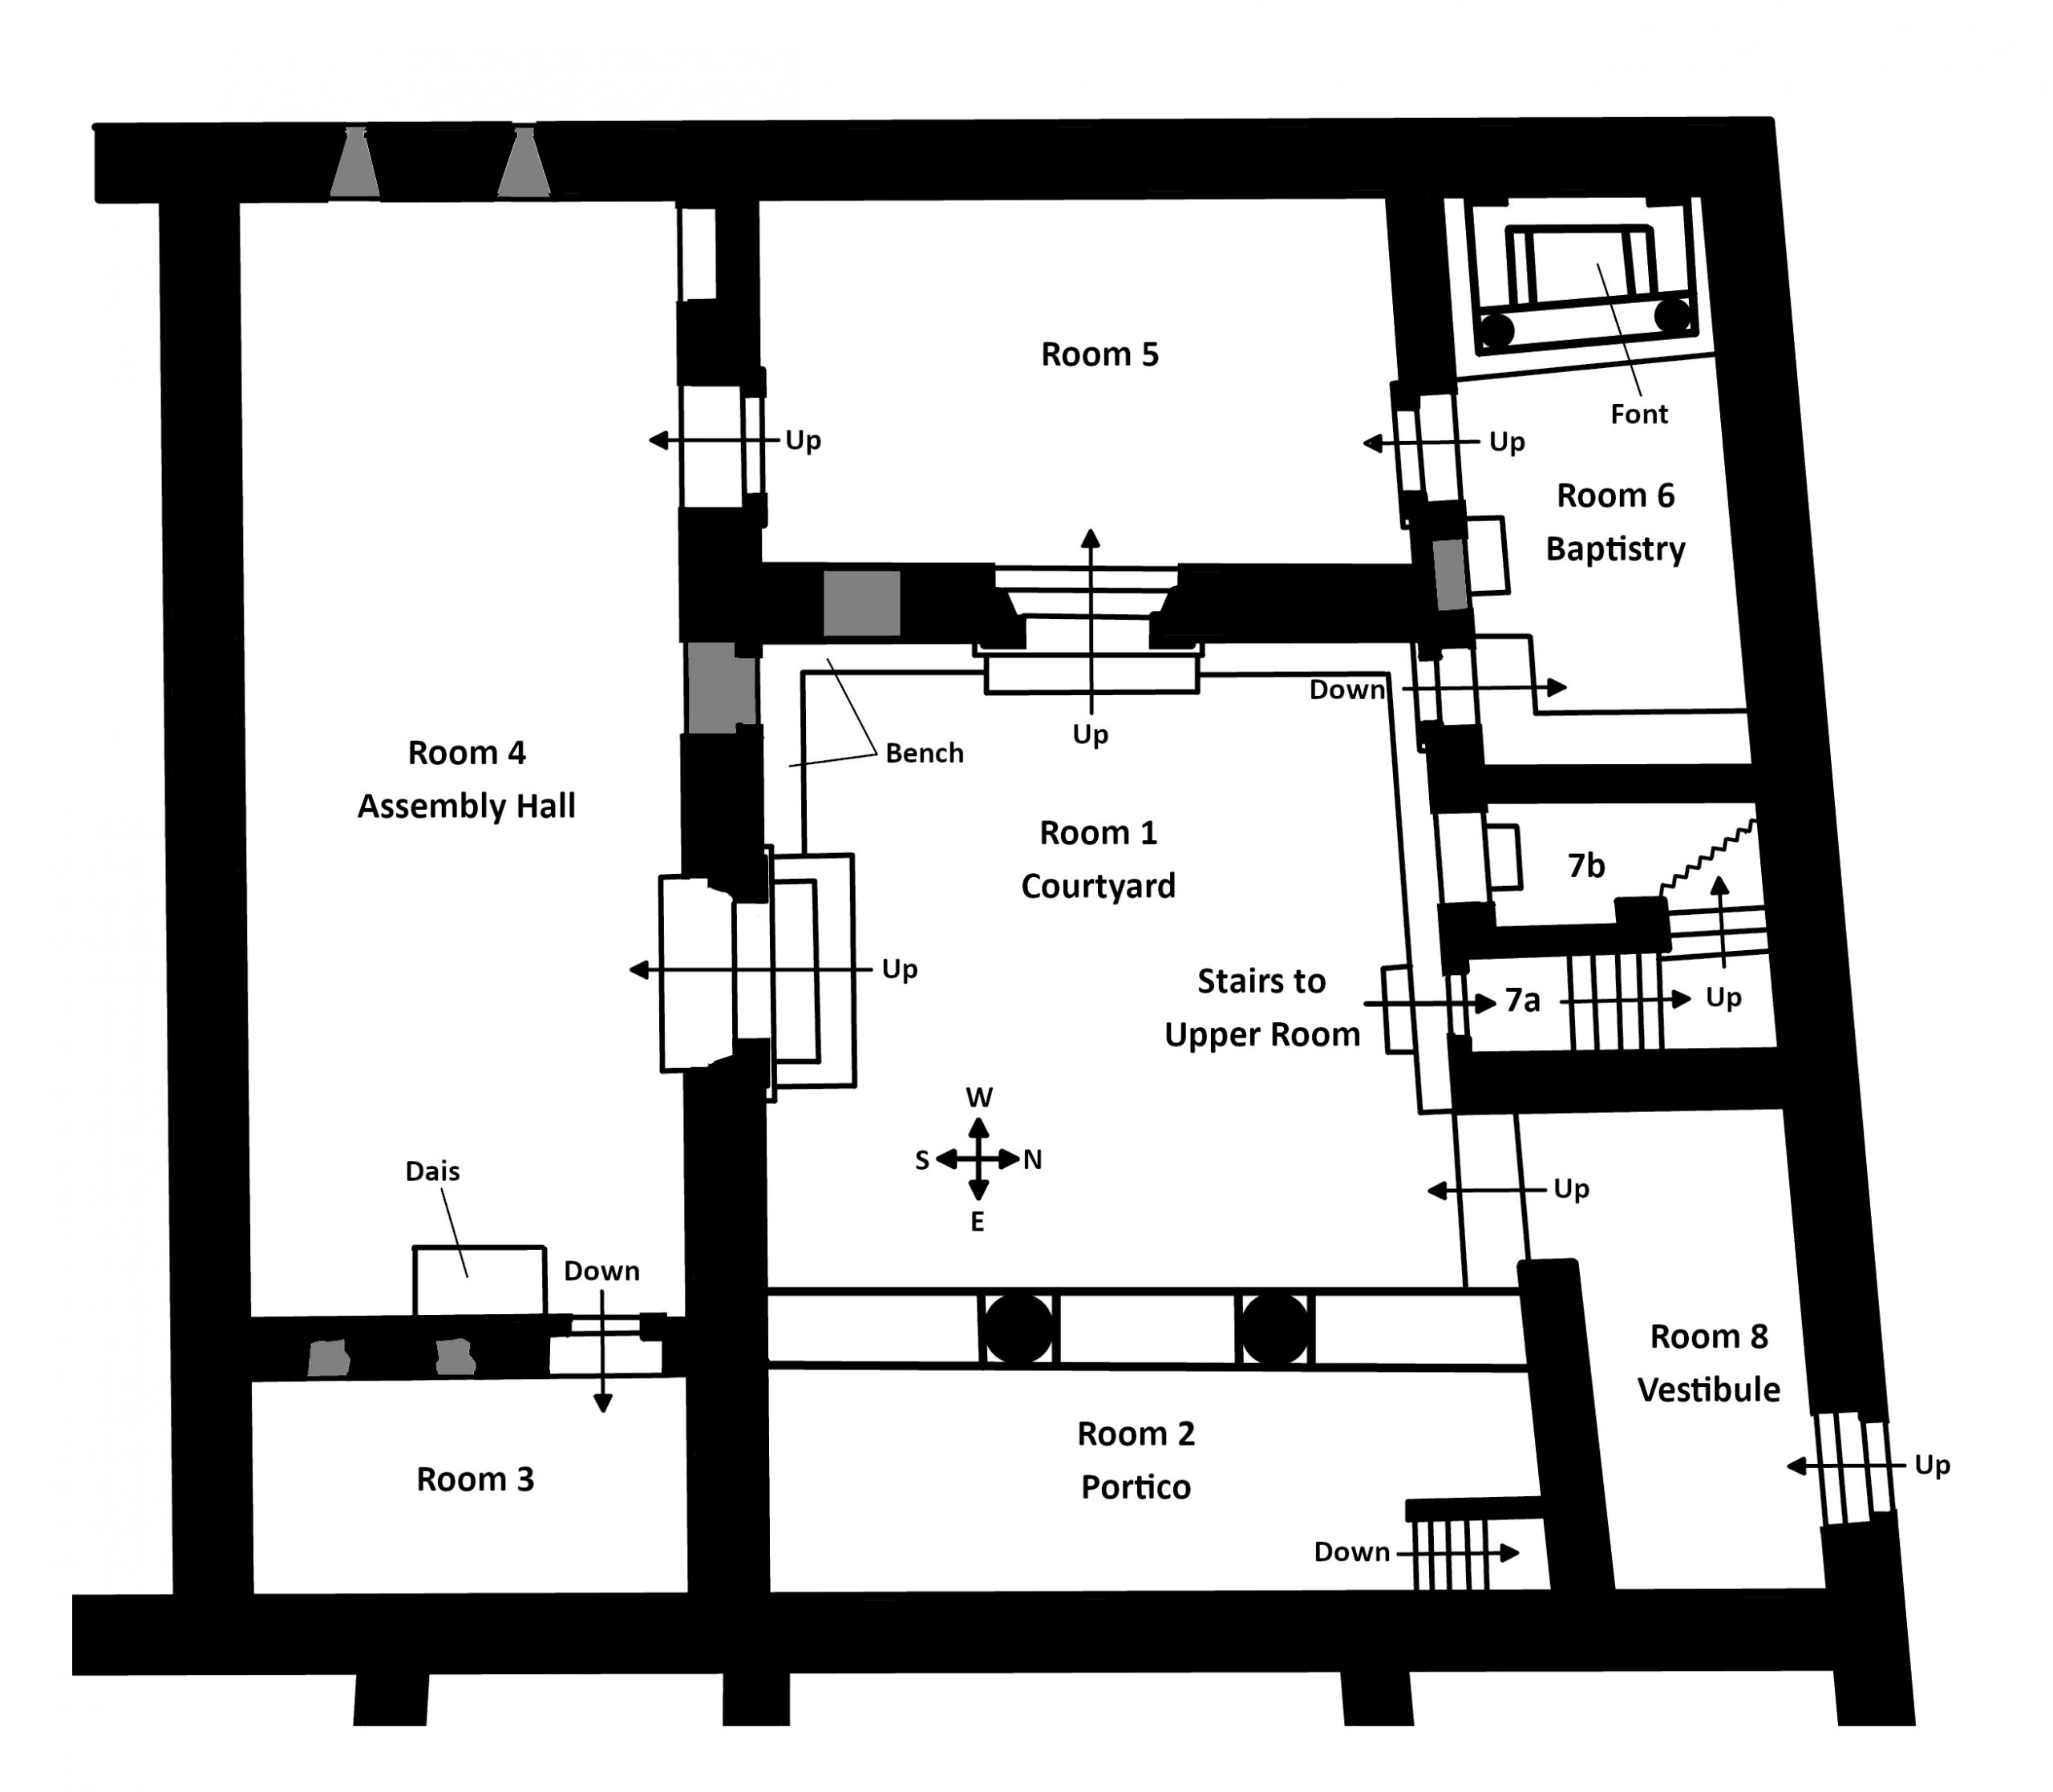 Floor plan of the Christian building at Dura Europos after renovation